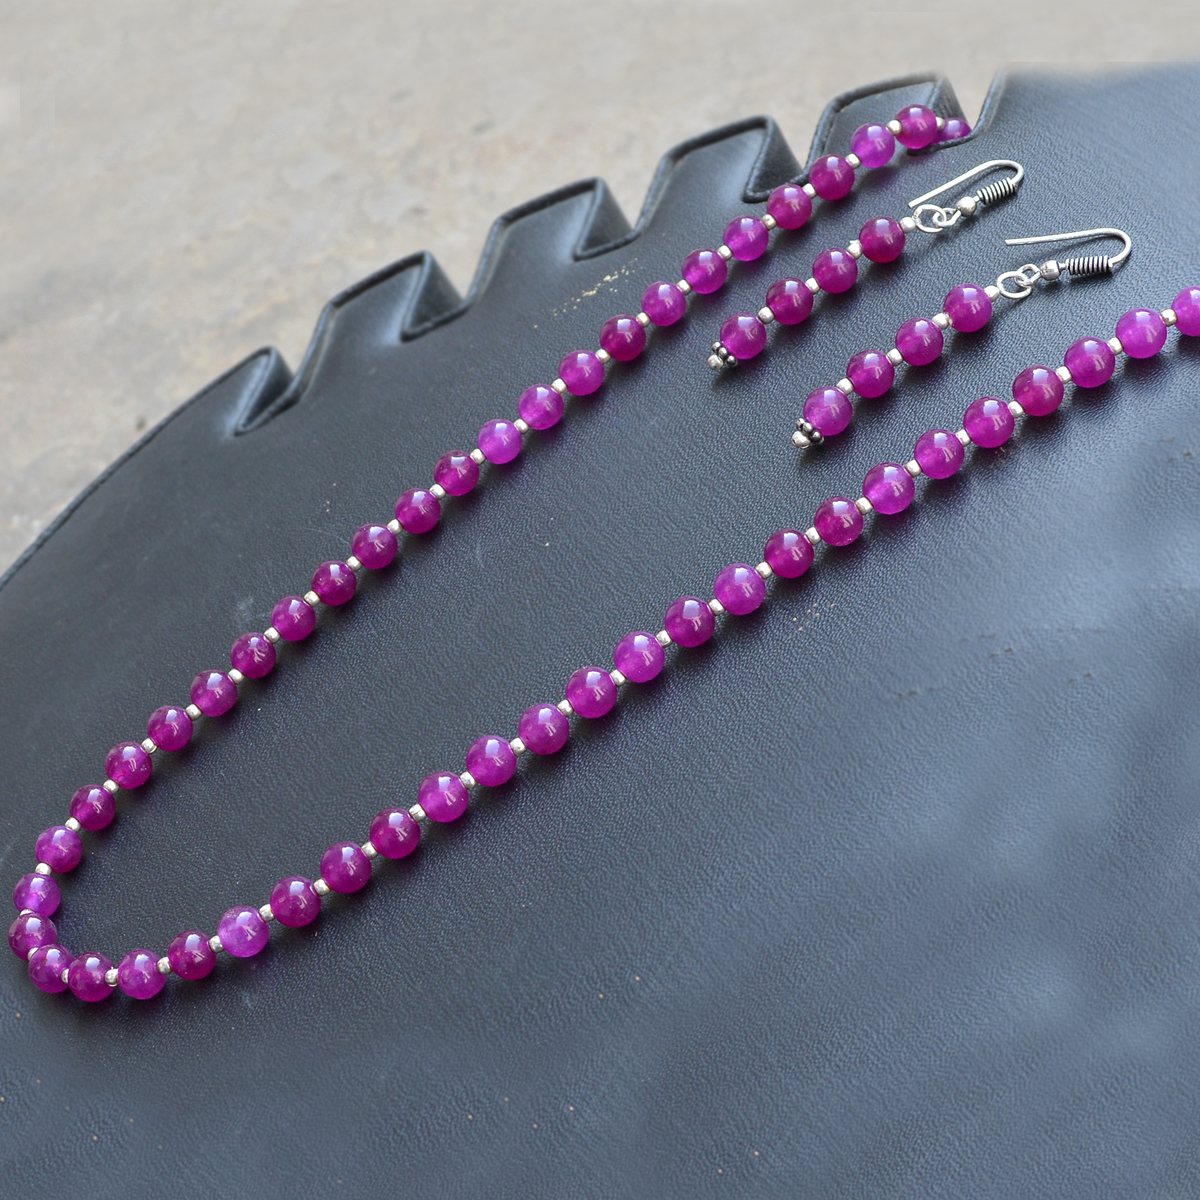 Beaded Purple Quartz Jaipur Rajasthan India 925 Sterling Silver Necklace With Handmade Jewelry Manufacturer Dangle Earring